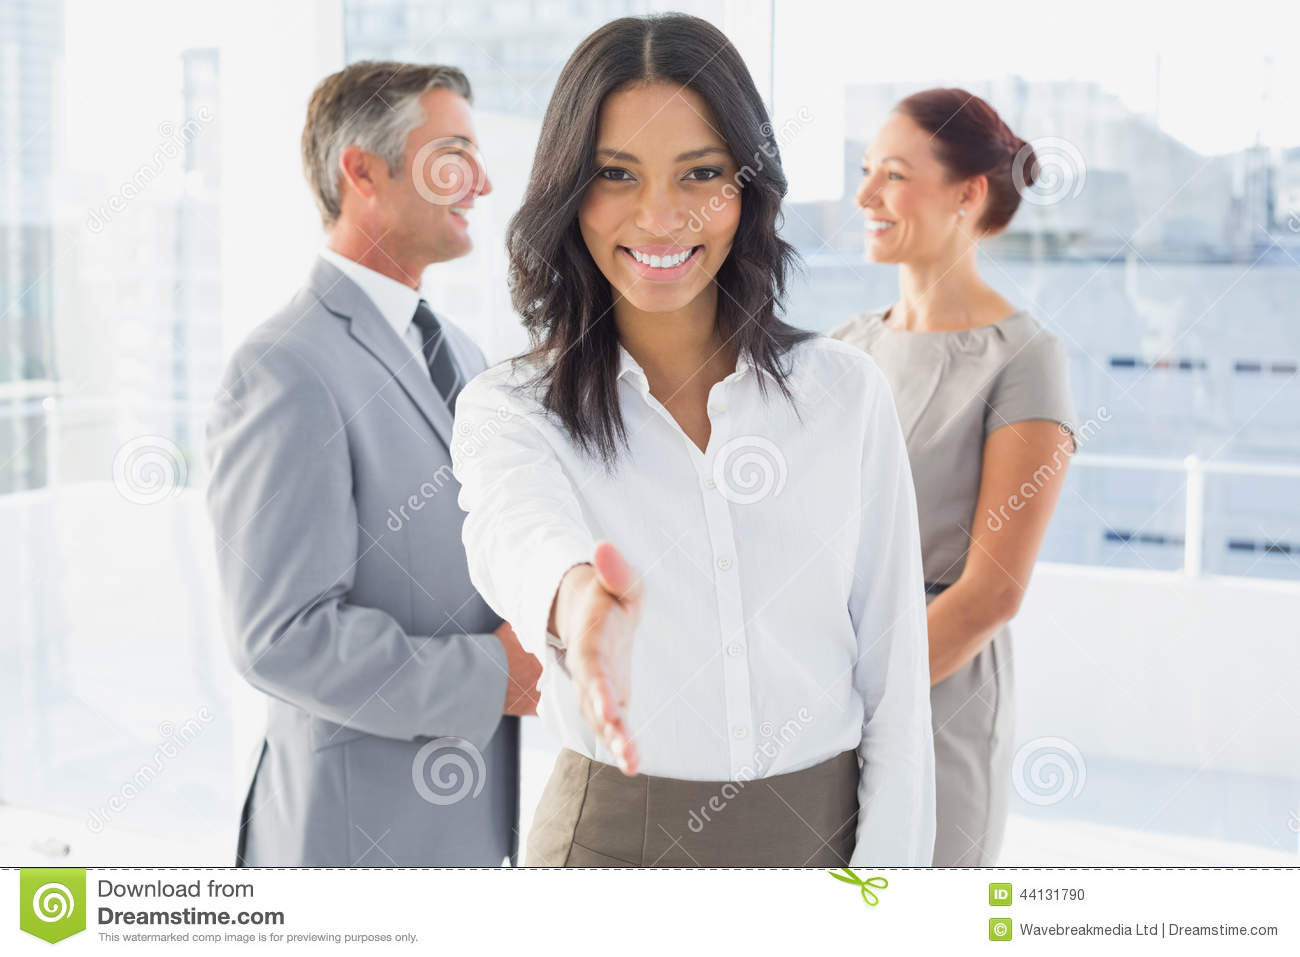 Business people handshake greeting deal at work photo free download - Businesswoman